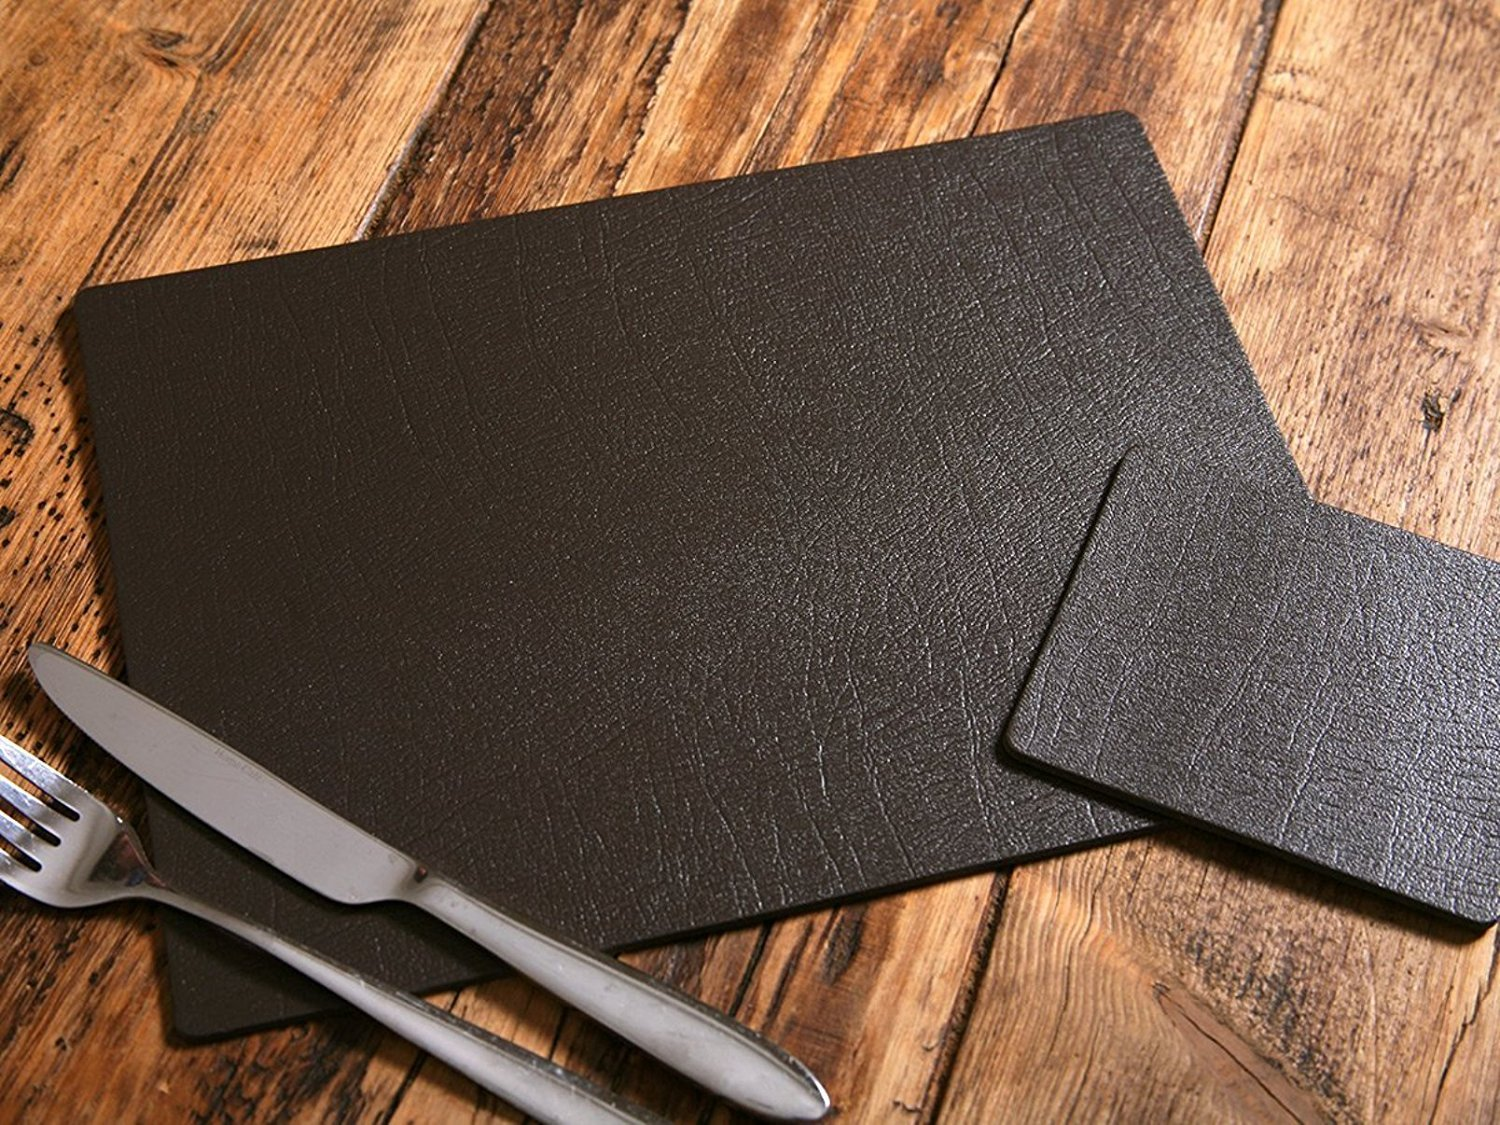 Giftag Set of 8 Artisan Brown Bonded Leather Placemats and 8 Coasters, Made In UK, 16 Piece